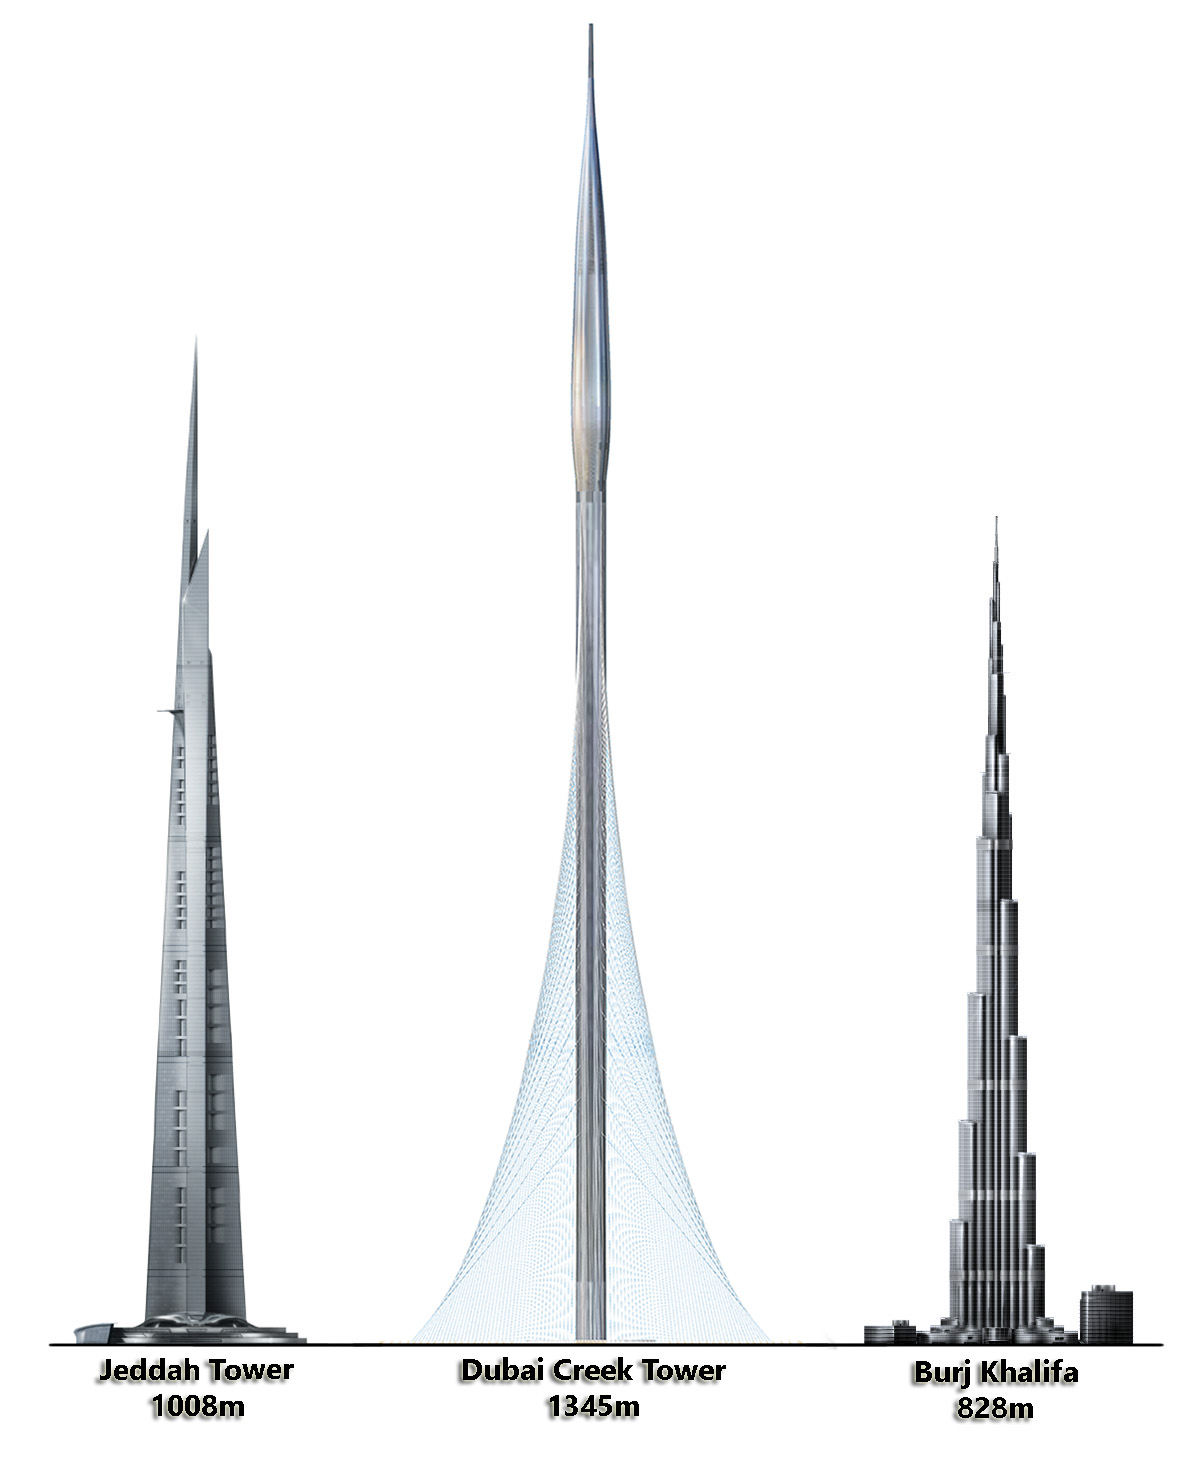 DUBAI | Dubai Creek Tower | 1300m+ | 4265ft+ | 210 fl | On Hold